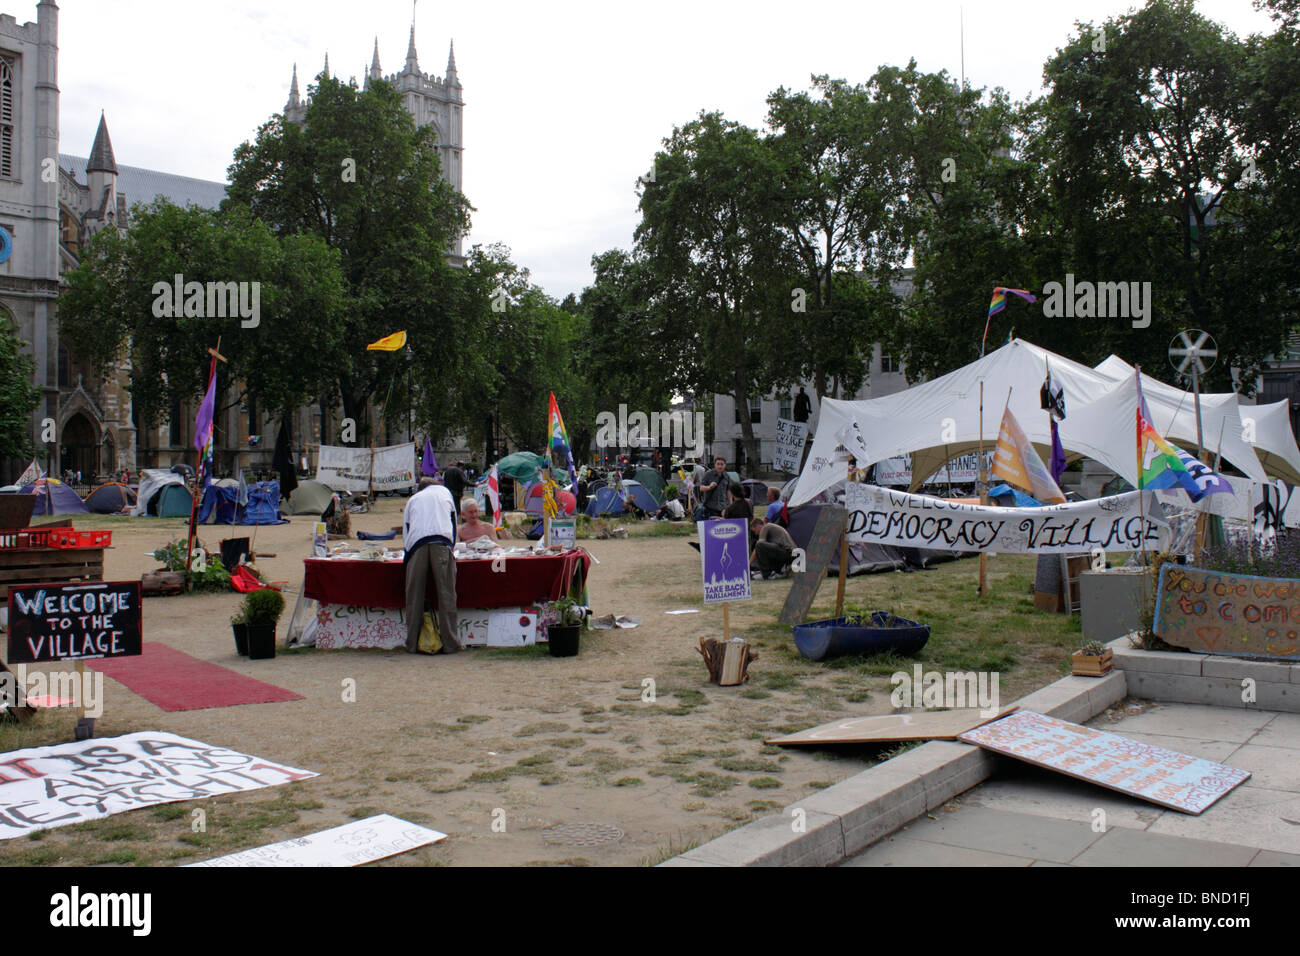 Democracy Village Peace Camp in Parliament Square Westminster London 6 July 2010 Stock Photo